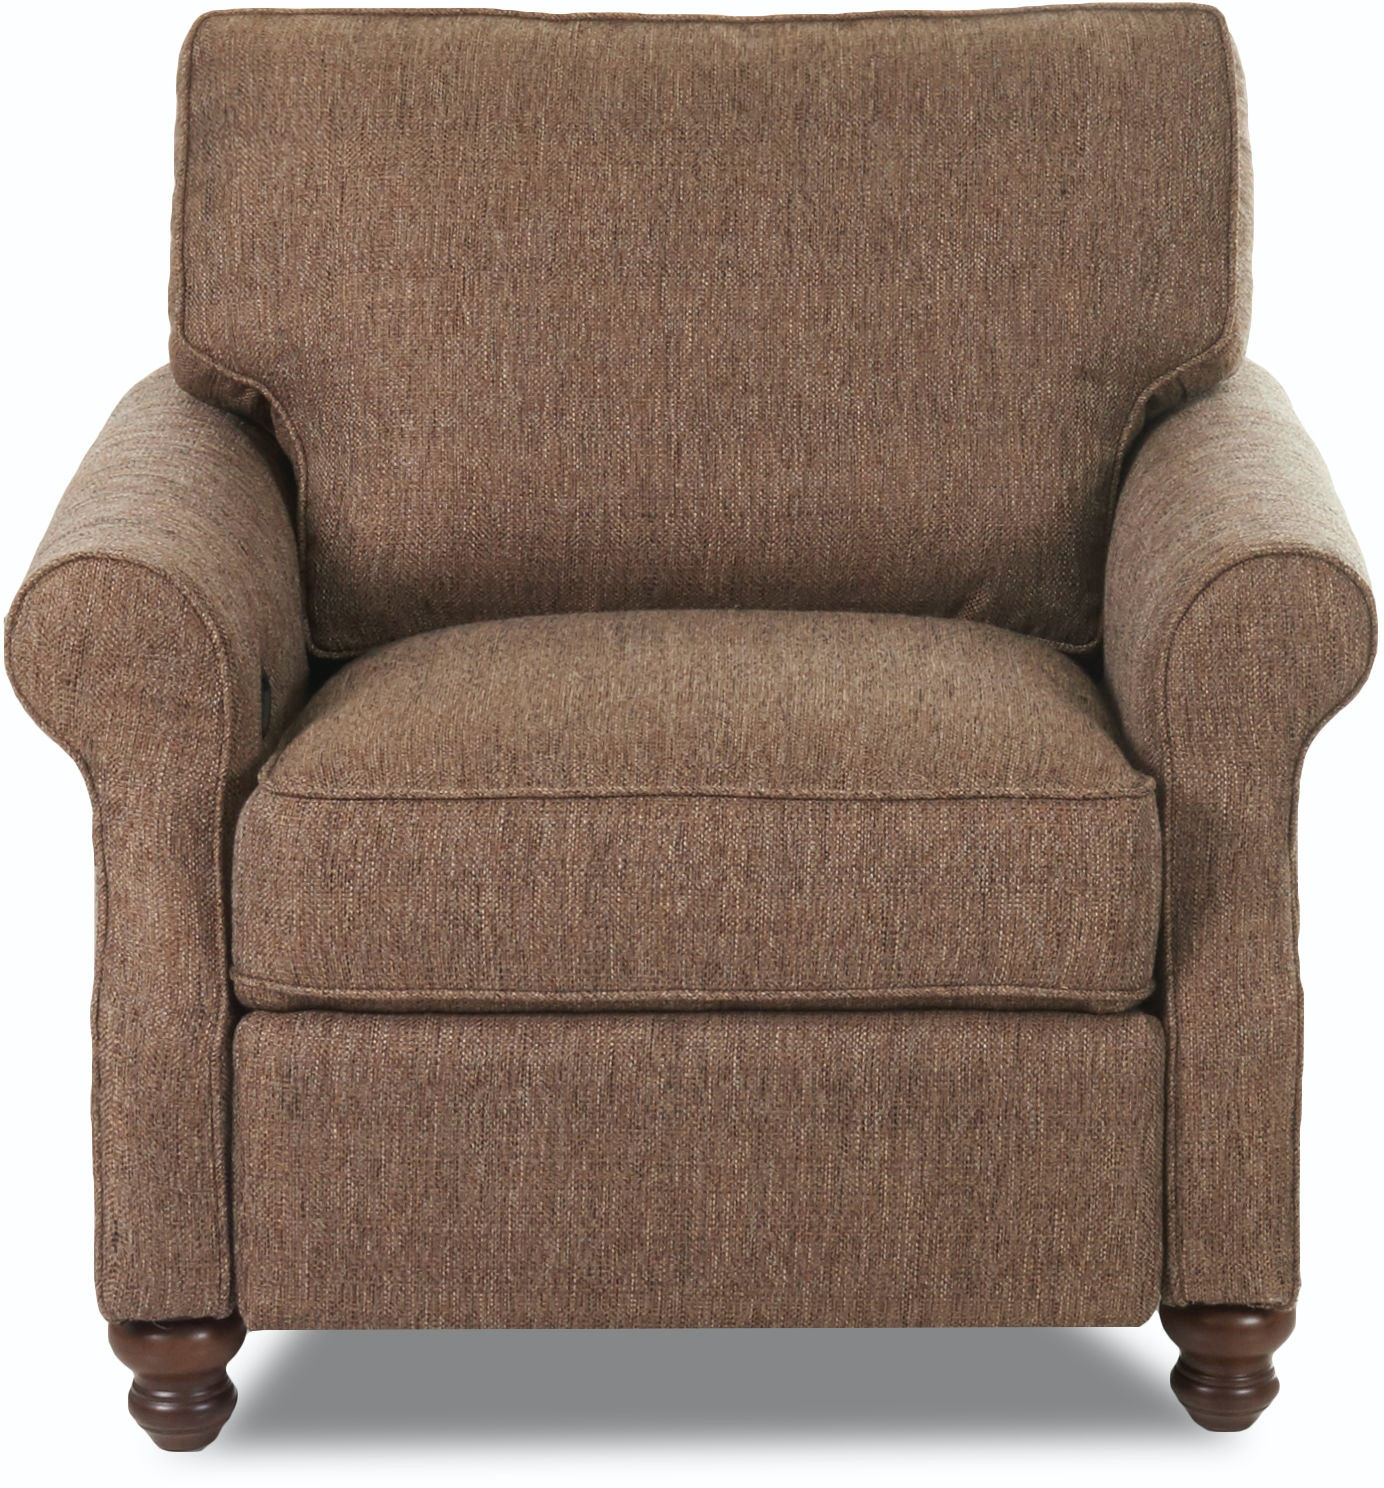 D26003 Pwrcklaussner Power Recliner Karl S